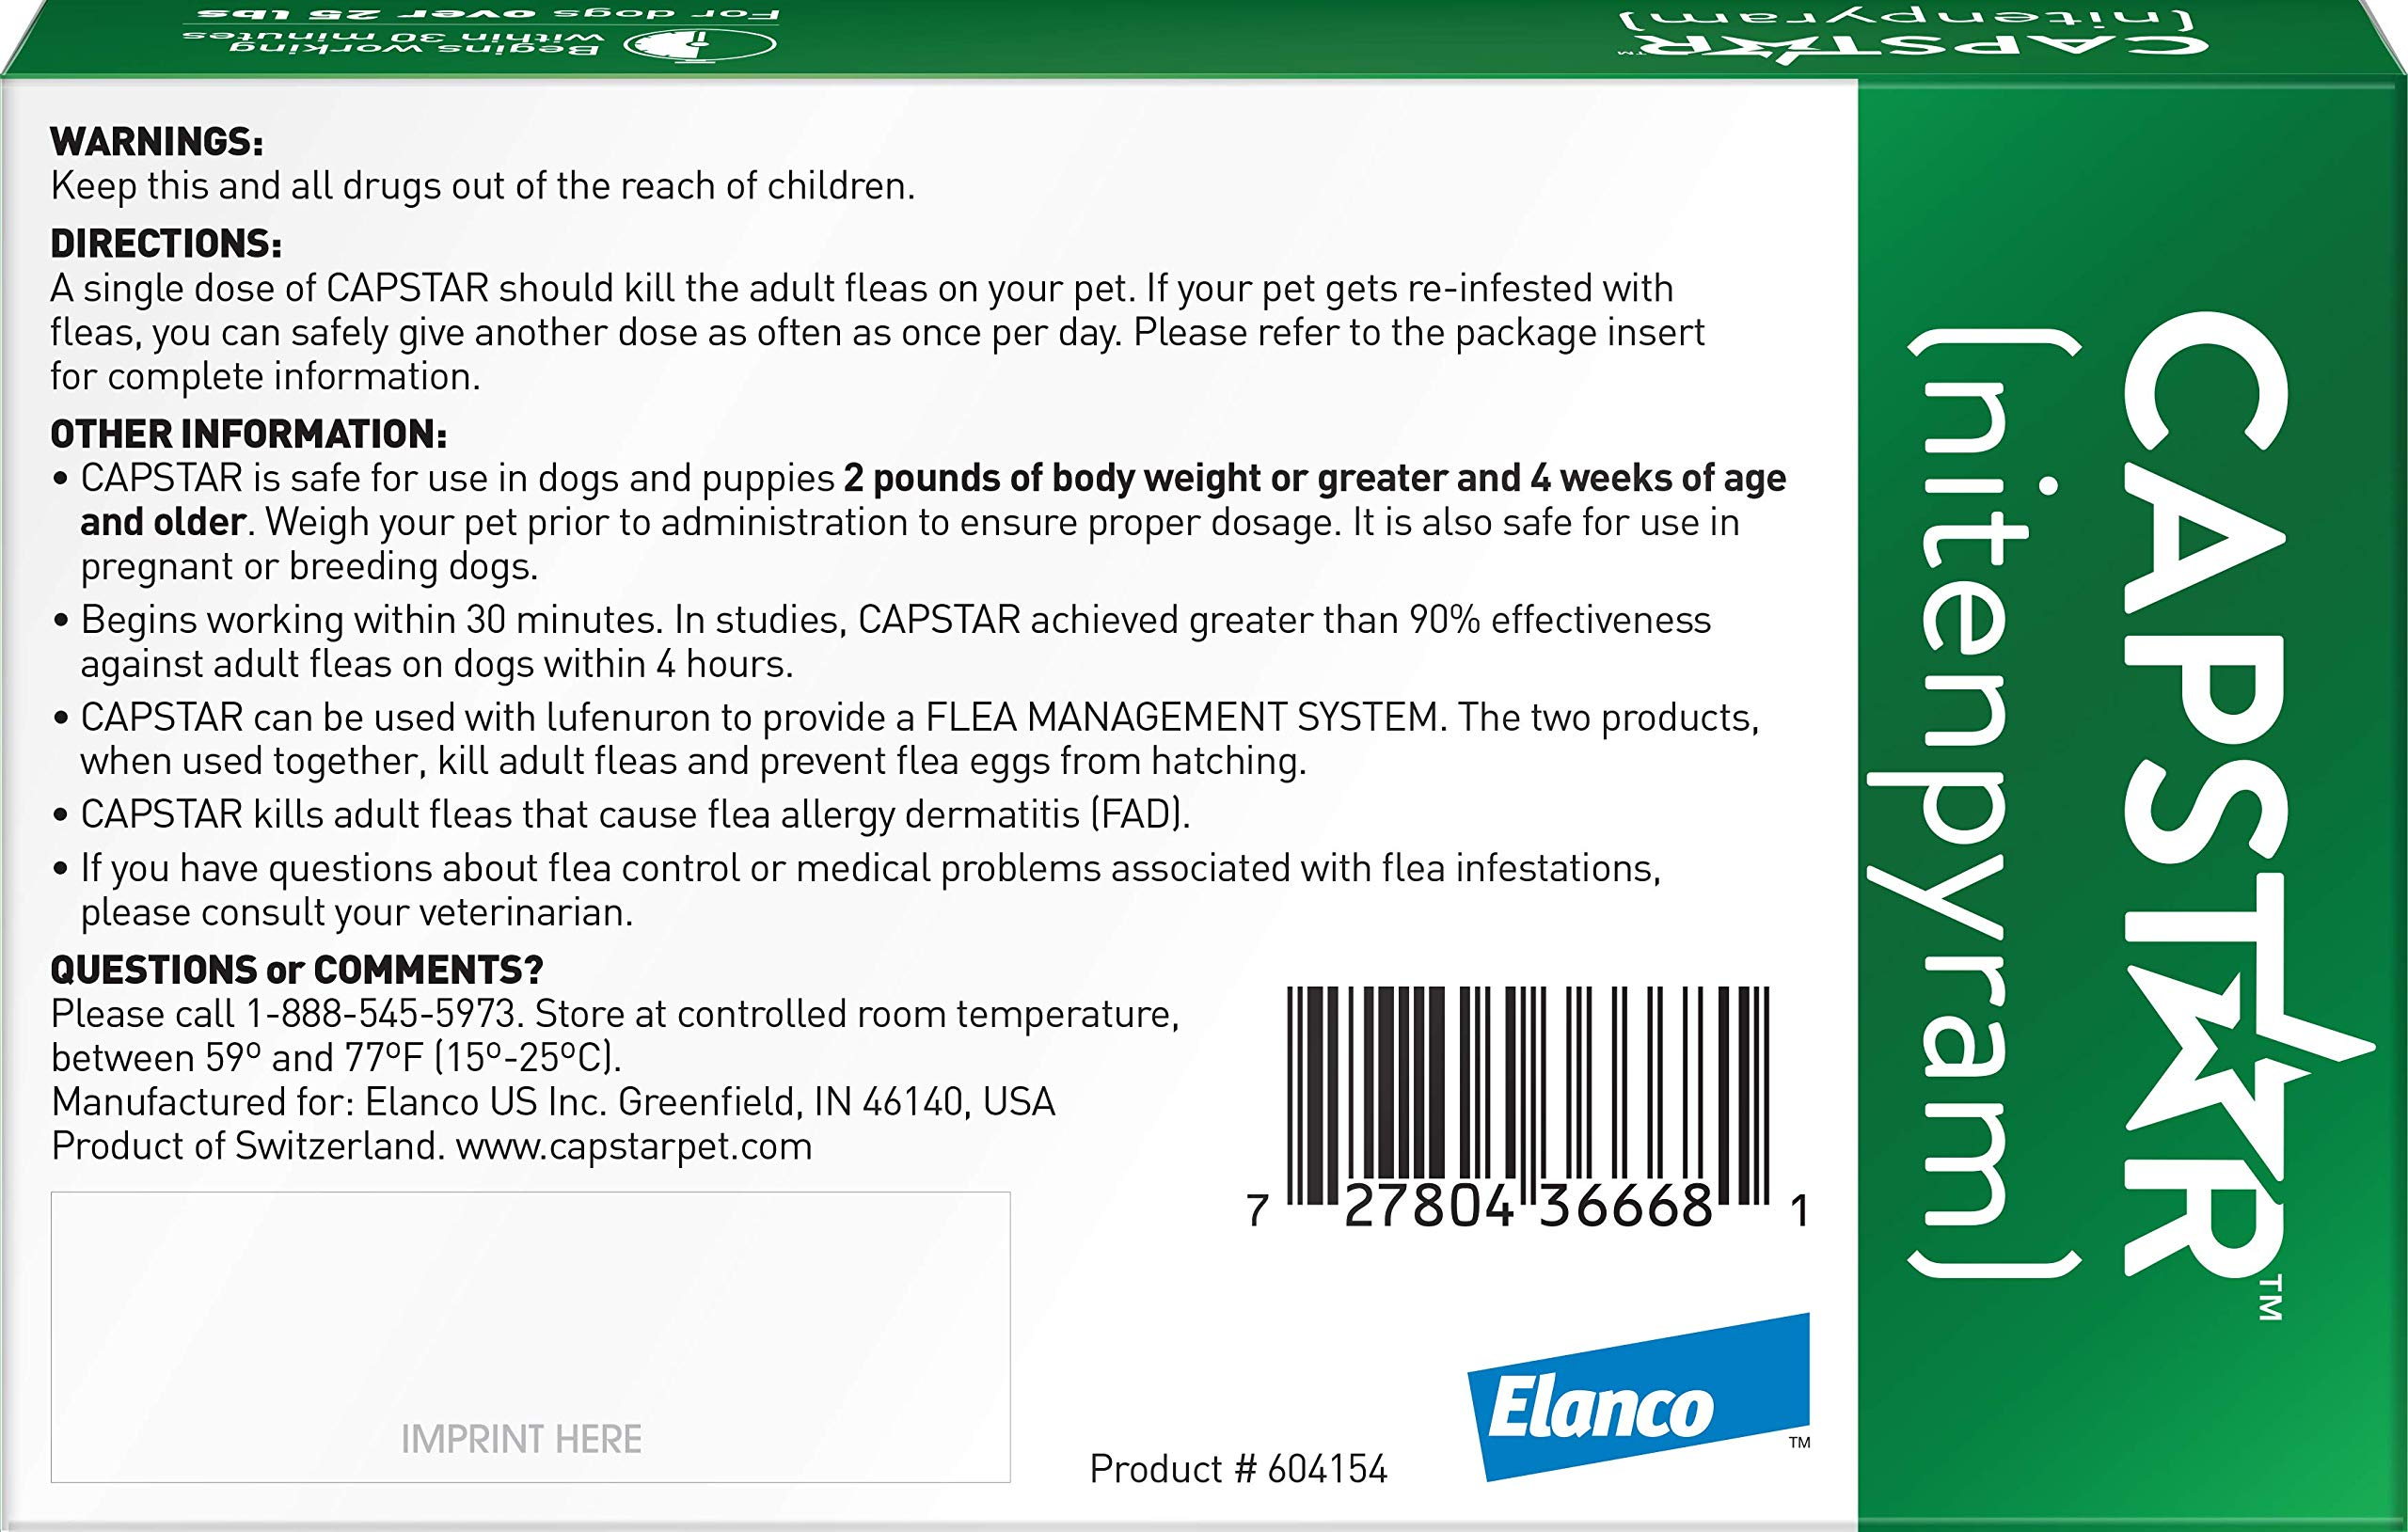 Elanco-Animal-Health-Capstar-Fast-Acting-Oral-Flea-Treatment-for-Large-Dogs-6-Doses-57-mg-26-125-lbs